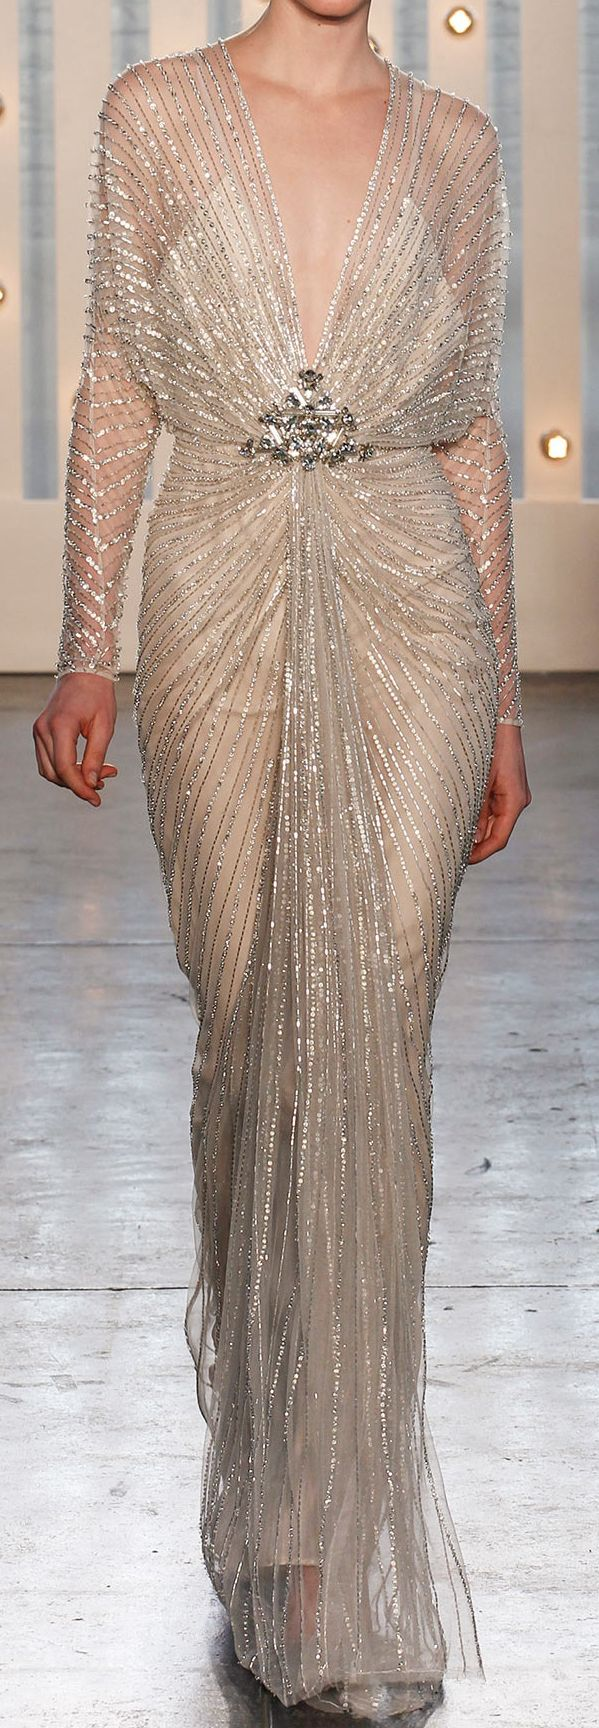 Jenny Packham vintage inspired gown this could be dress one...